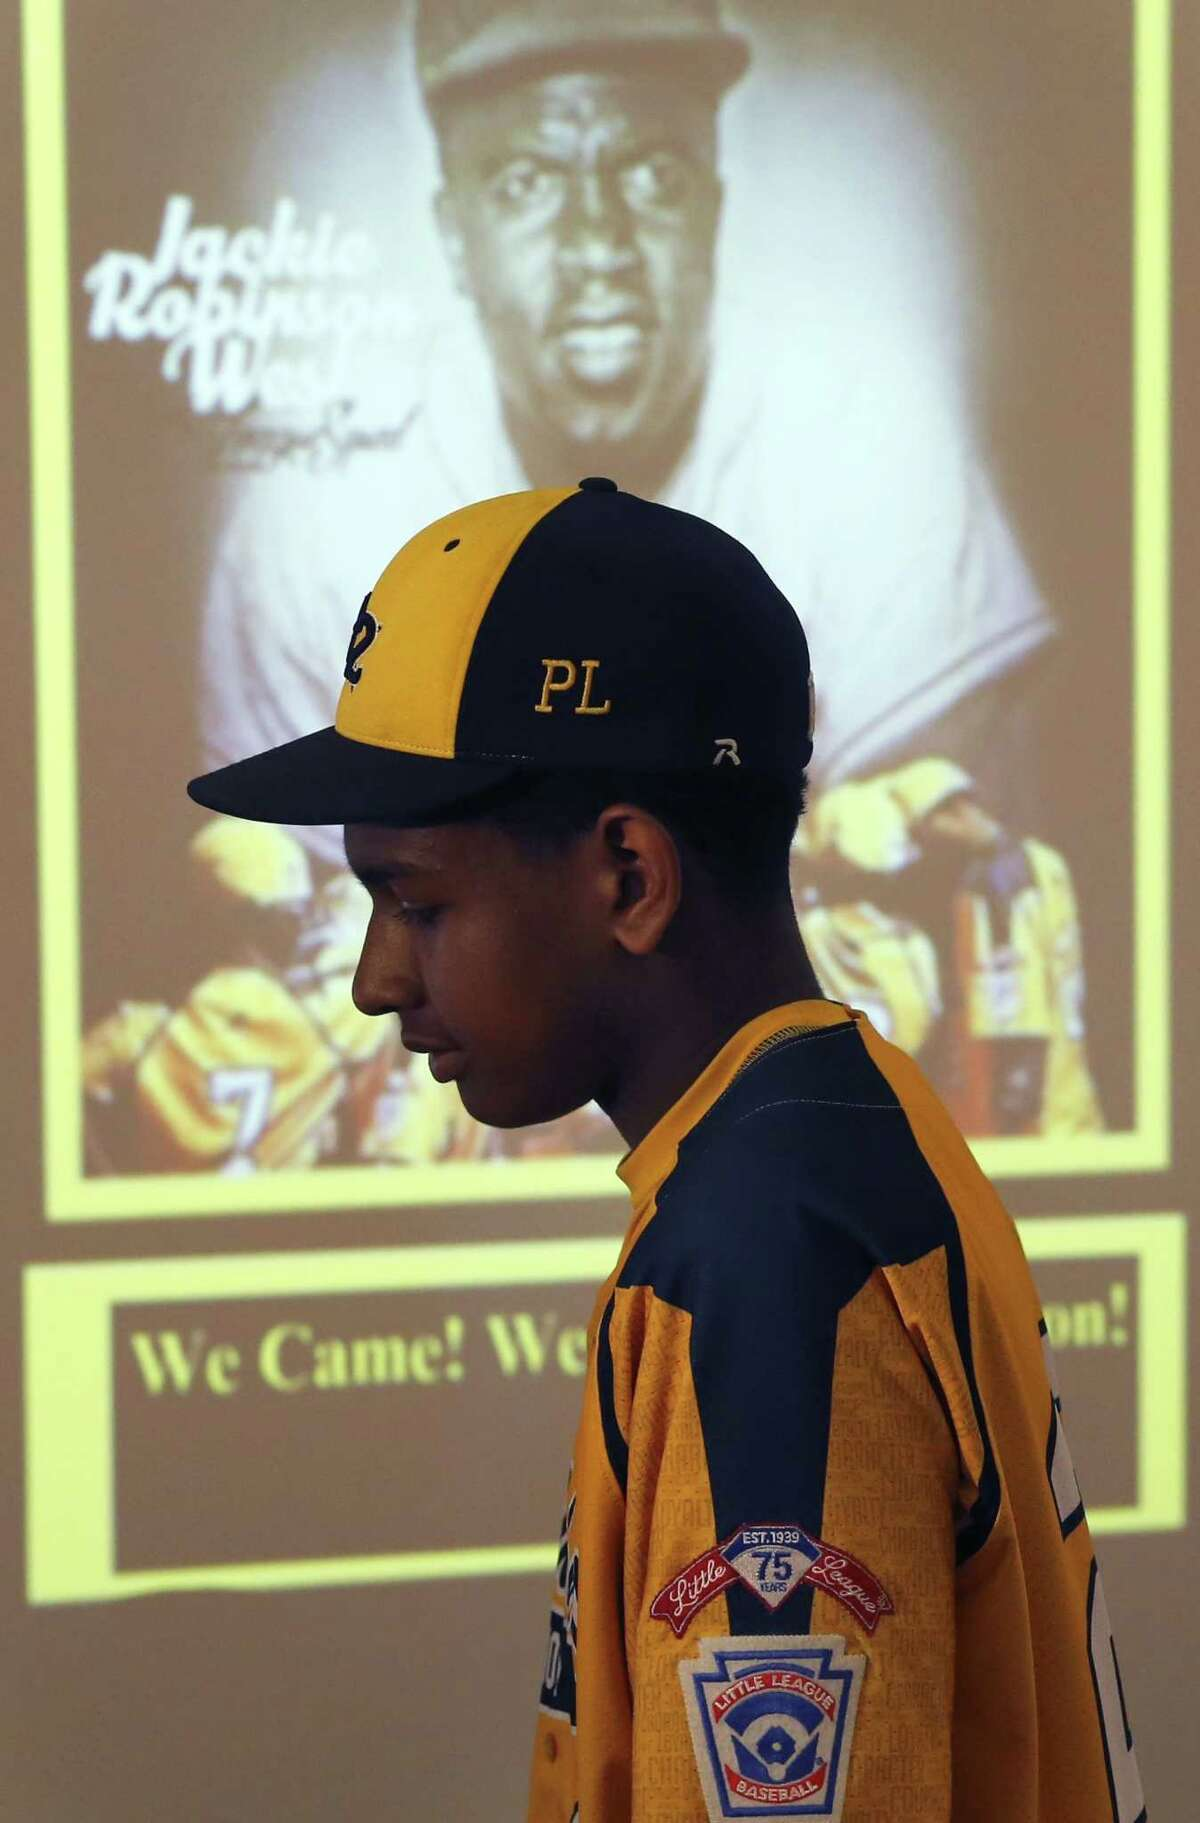 Jackie Robinson West Little League player Prentiss Luster walks past a projected image of Jackie Robinson after team attorney Victor Henderson addressed reporters at a news conference Wednesday in Chicago.